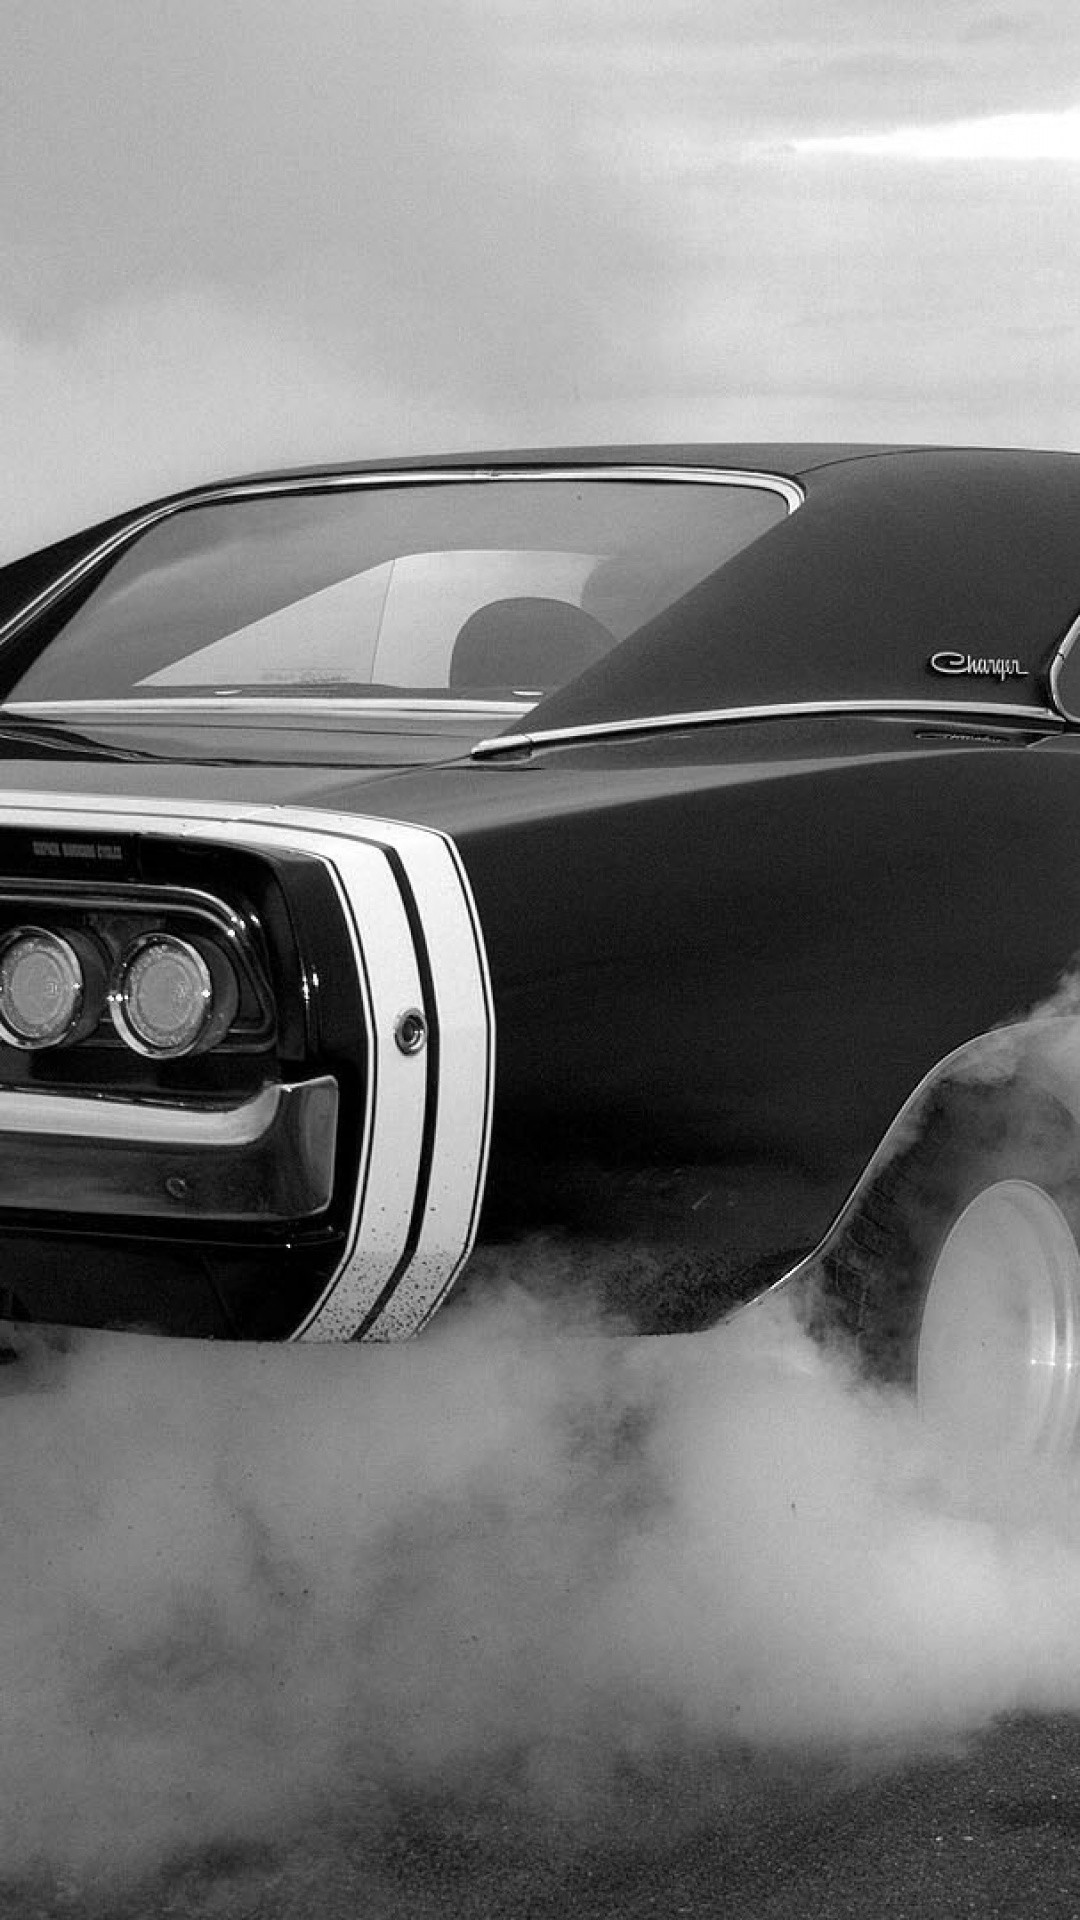 American Muscle Cars Wallpapers Download 301 Moved Permanently